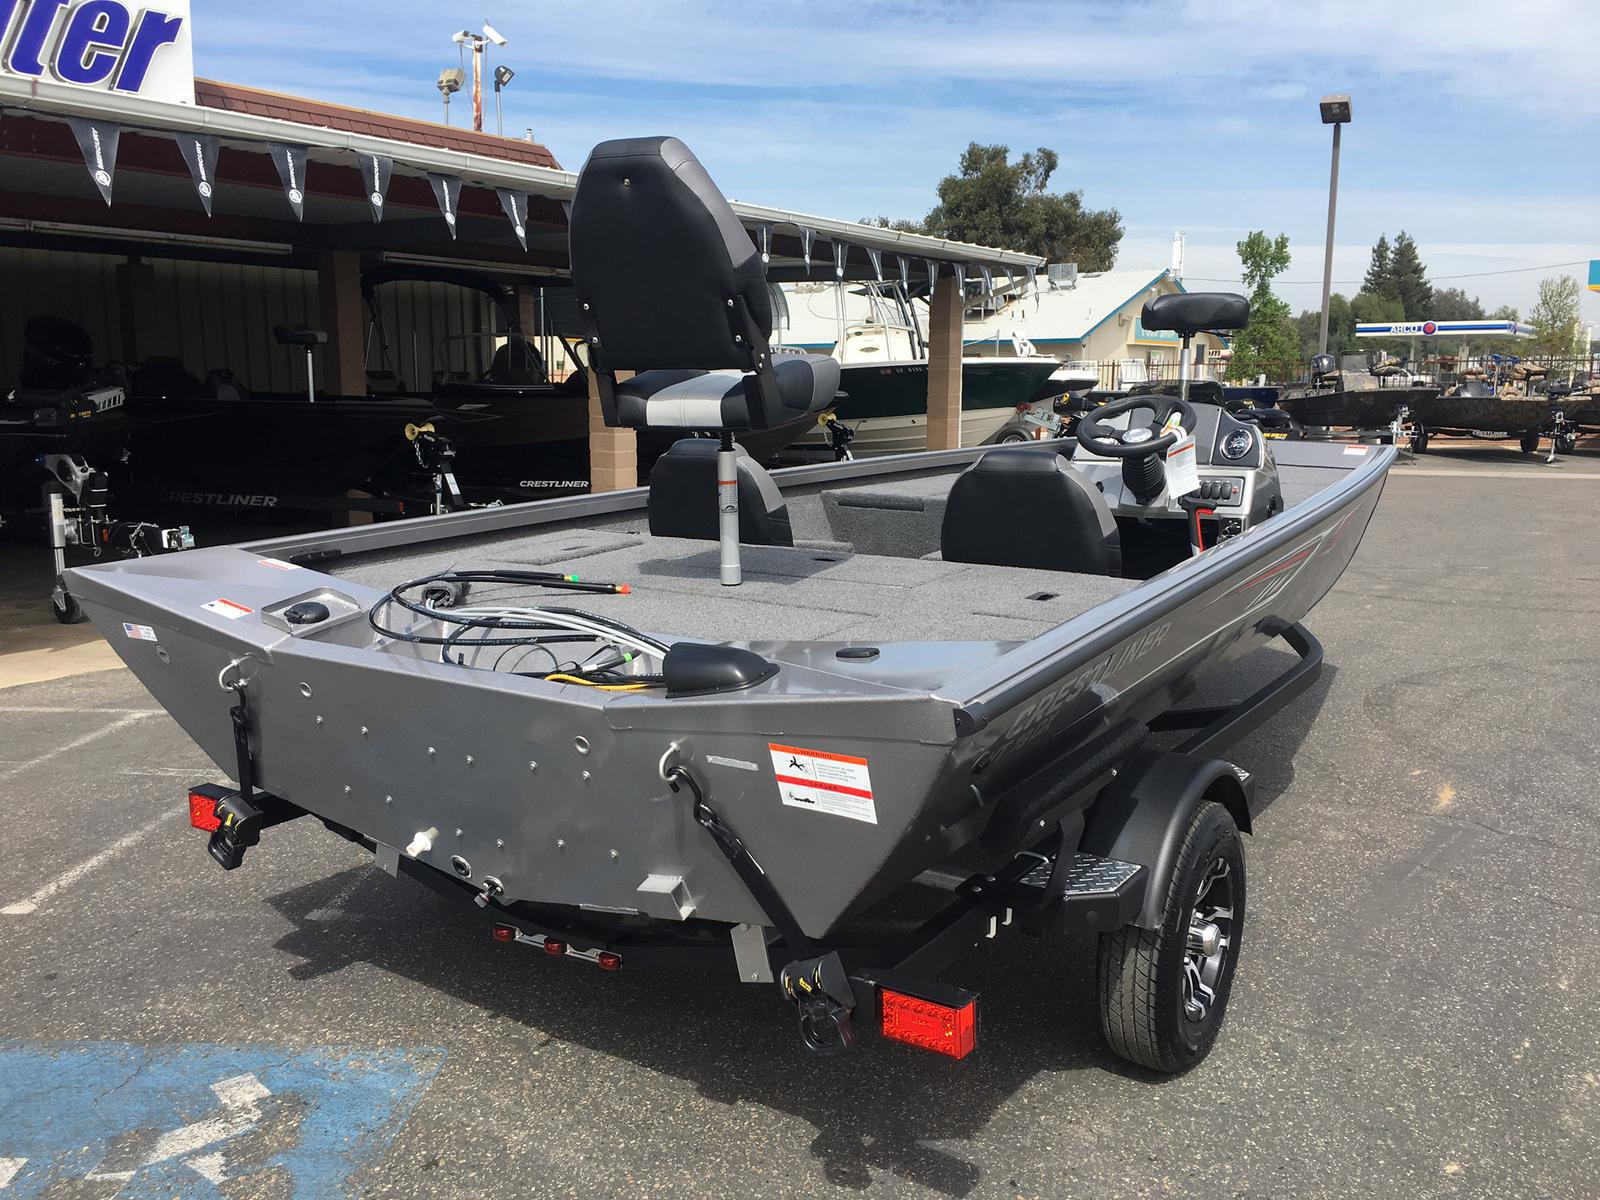 2018 crestliner vt 19 mercury 115hp for sale in madera ca pacific rh pacificmarinecenter com Ford Wiring Harness Kits Wiring Harness Terminals and Connectors